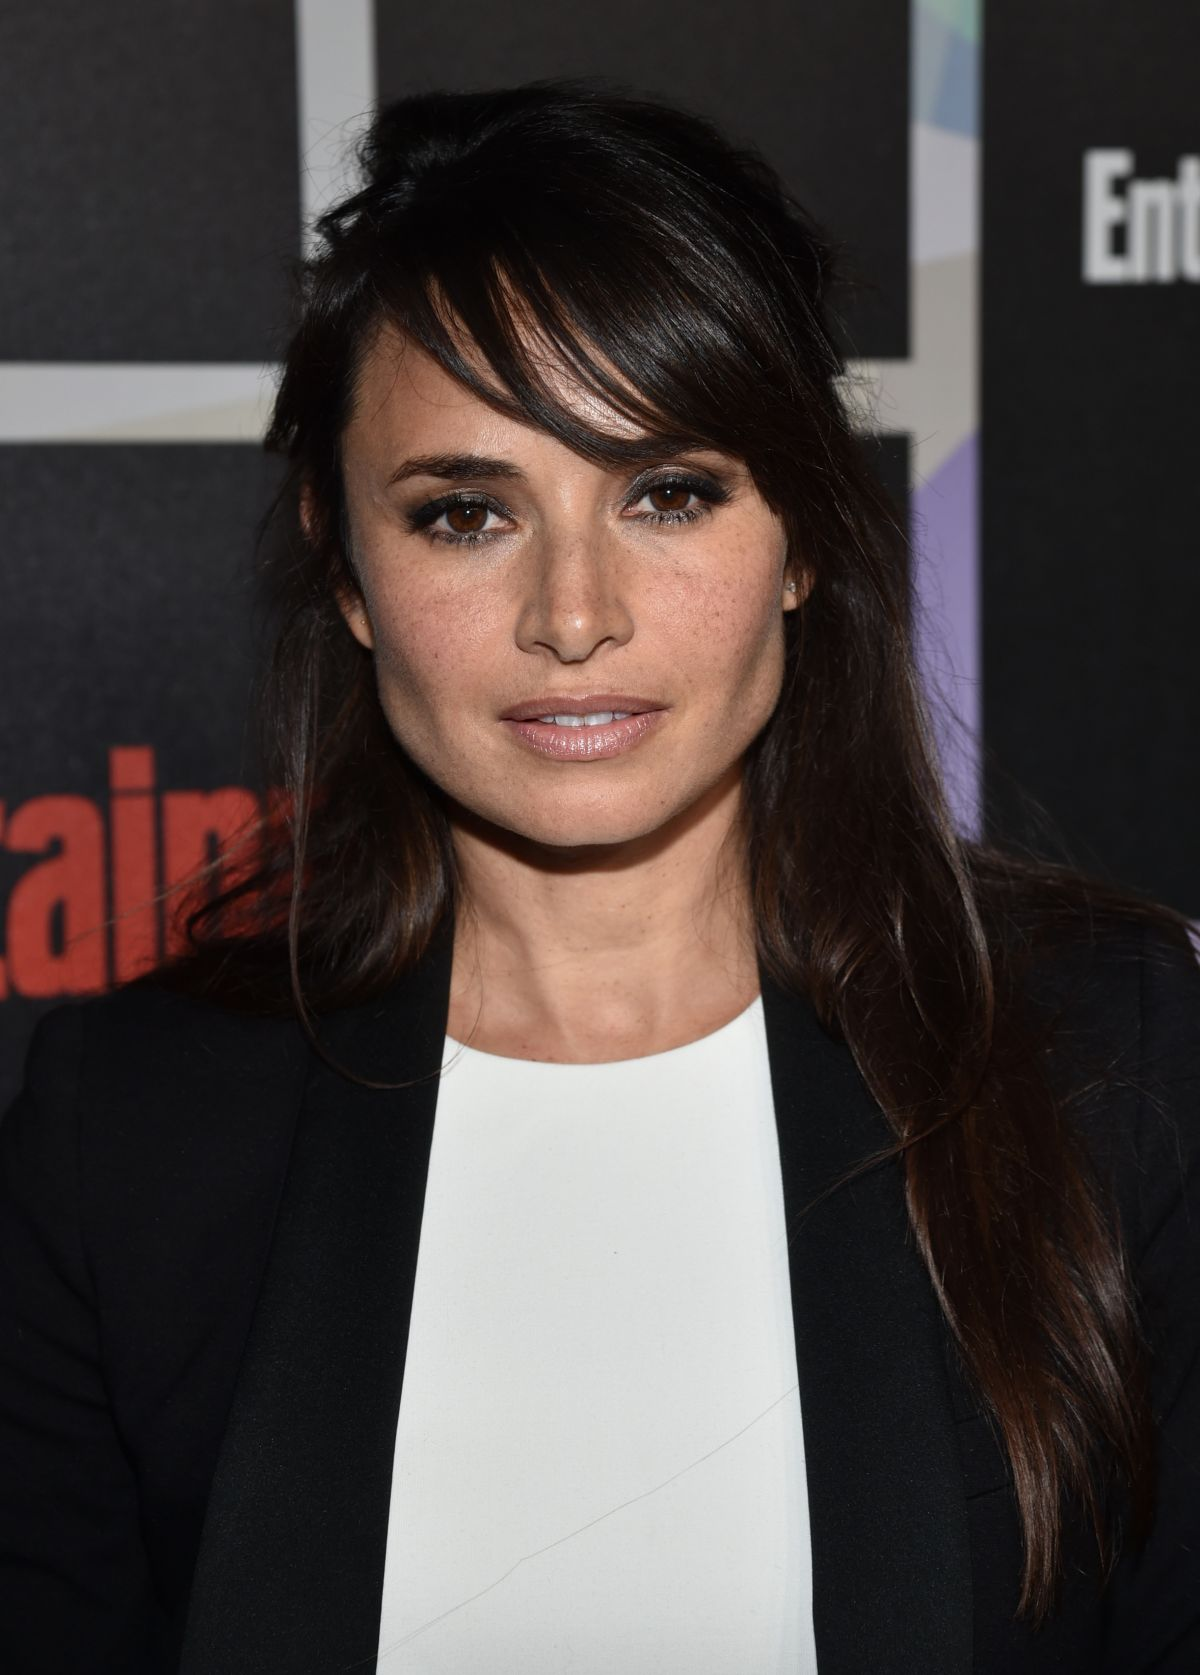 MIA MAESTRO at Entertainment Weekly's Comic-con Celebration